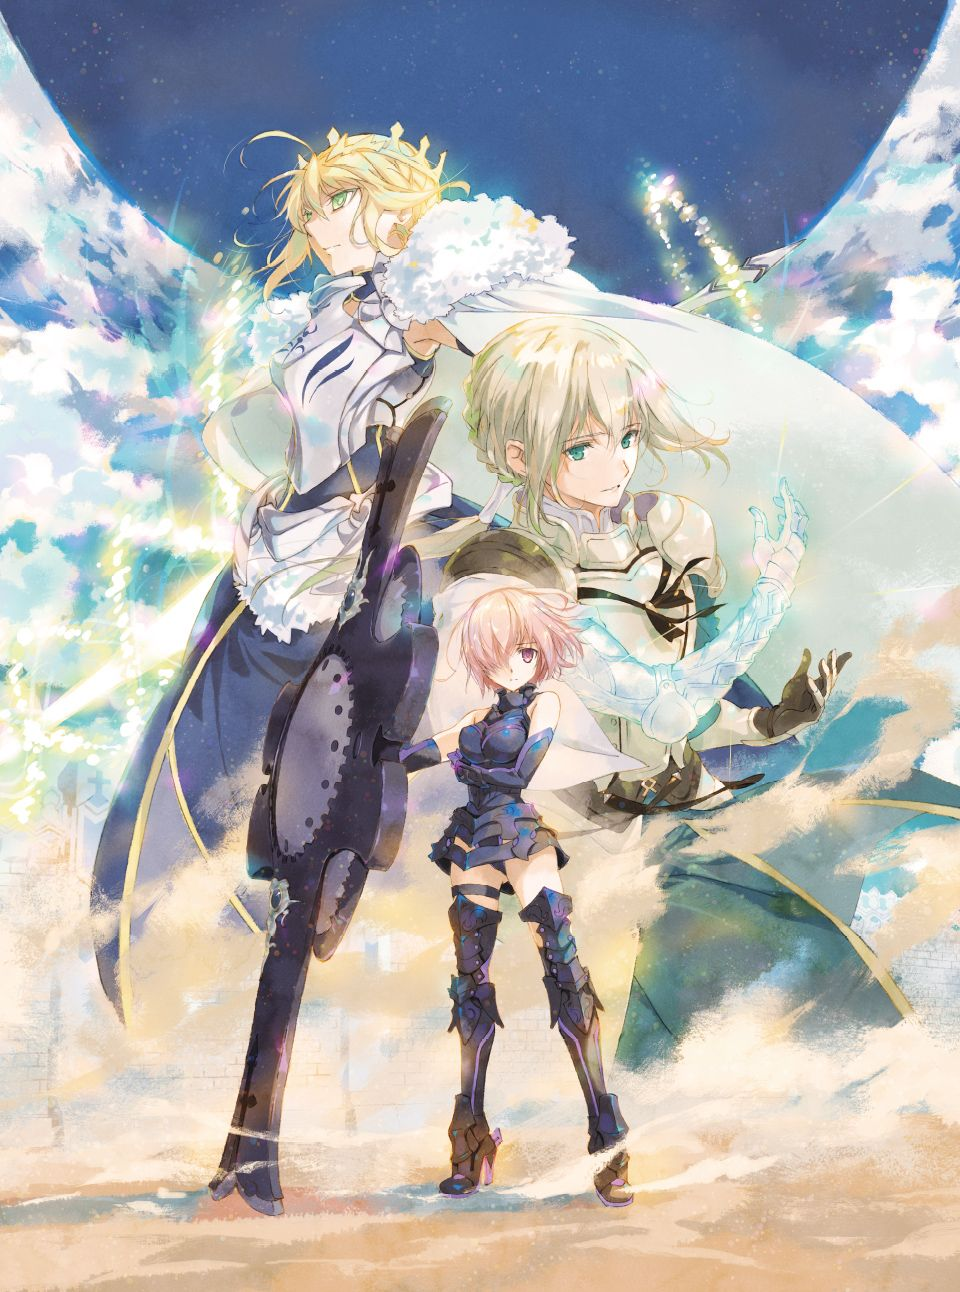 SPECIAL   Fate/Grand Order THE STAGE -神聖円卓領域キャメロット-   Fate grand order lancer. Fate anime series. Anime